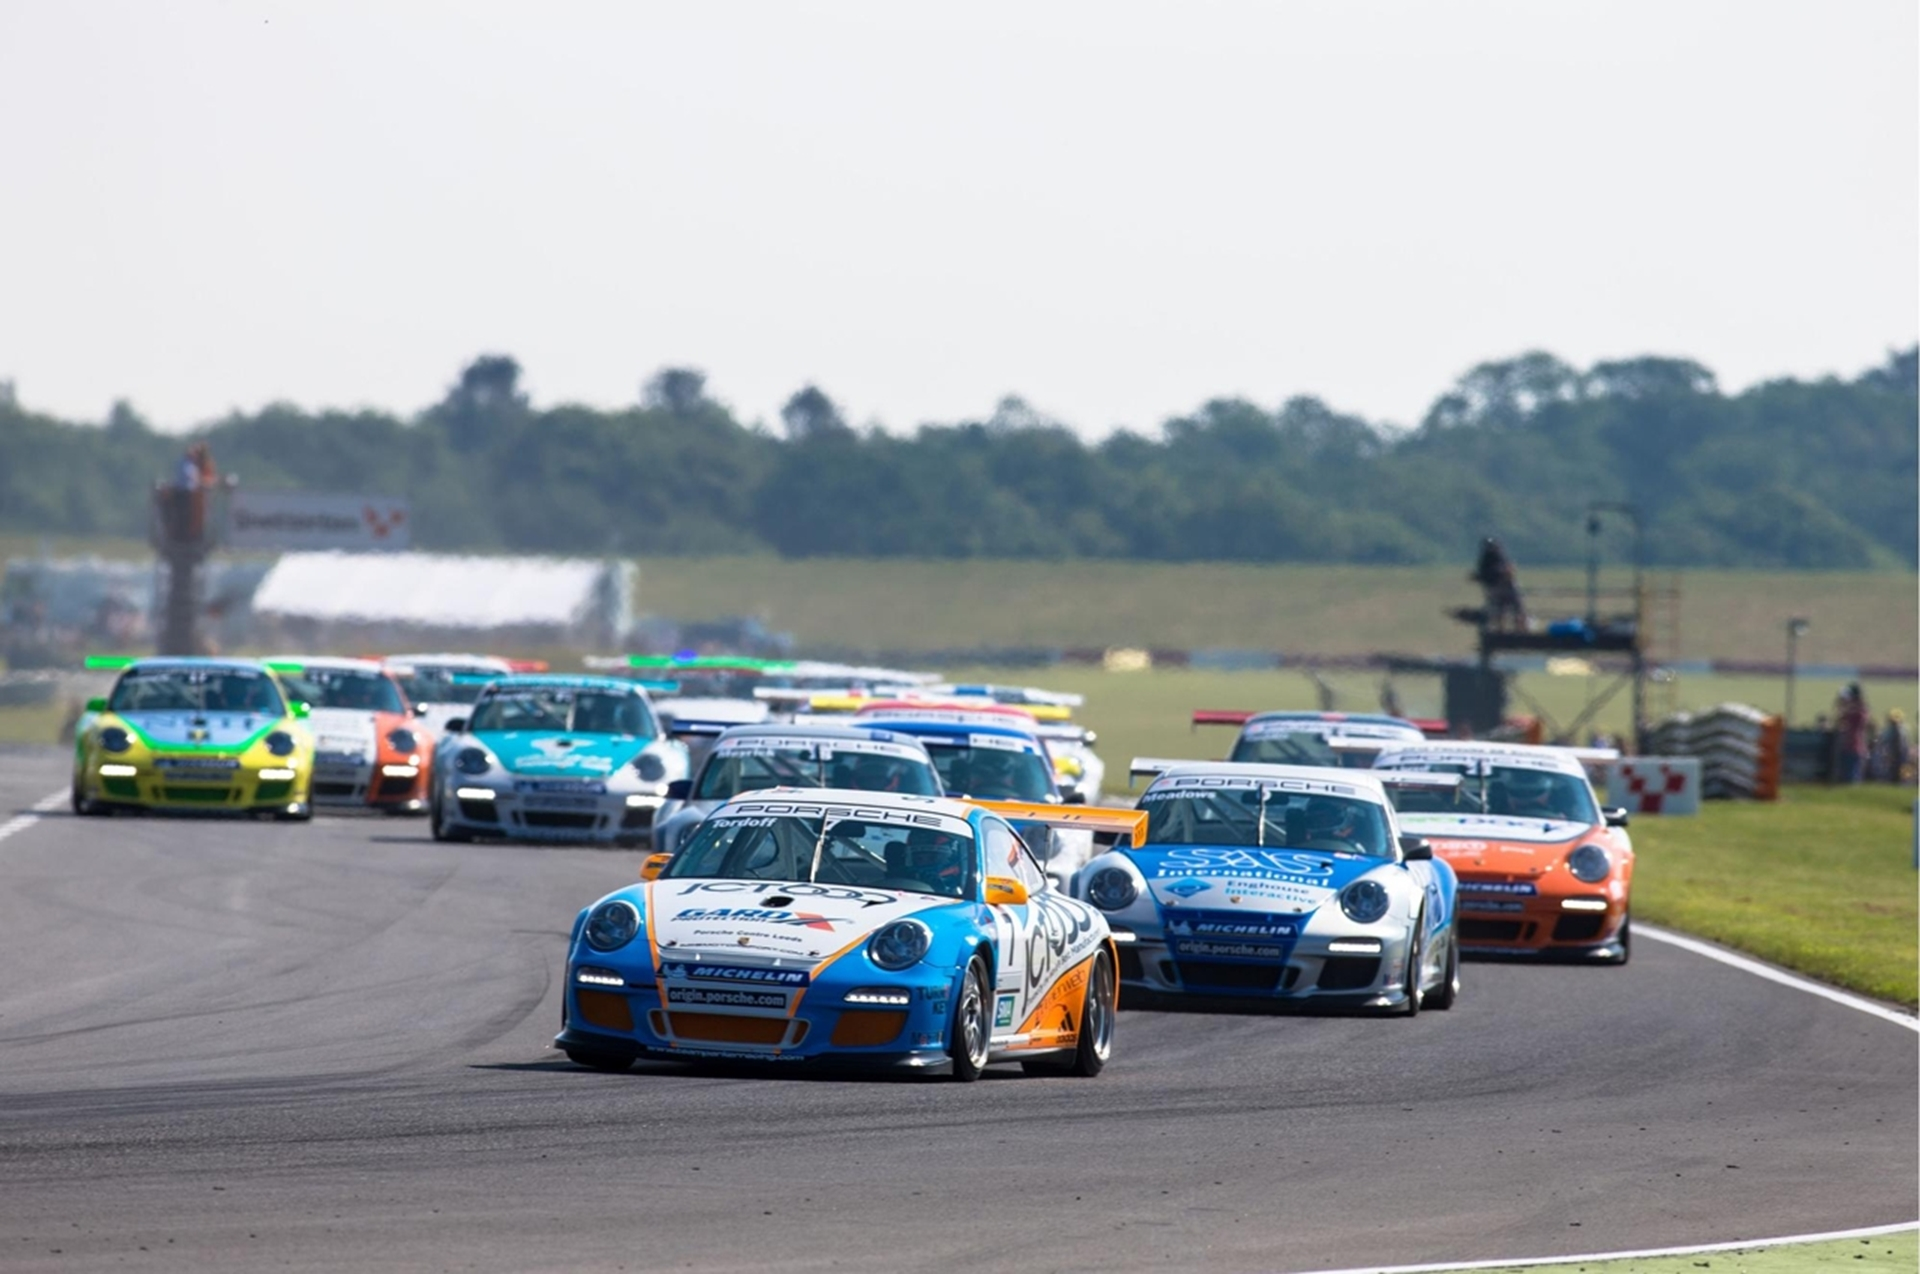 Sam Tordoff leads the Porsche Carrera Cup